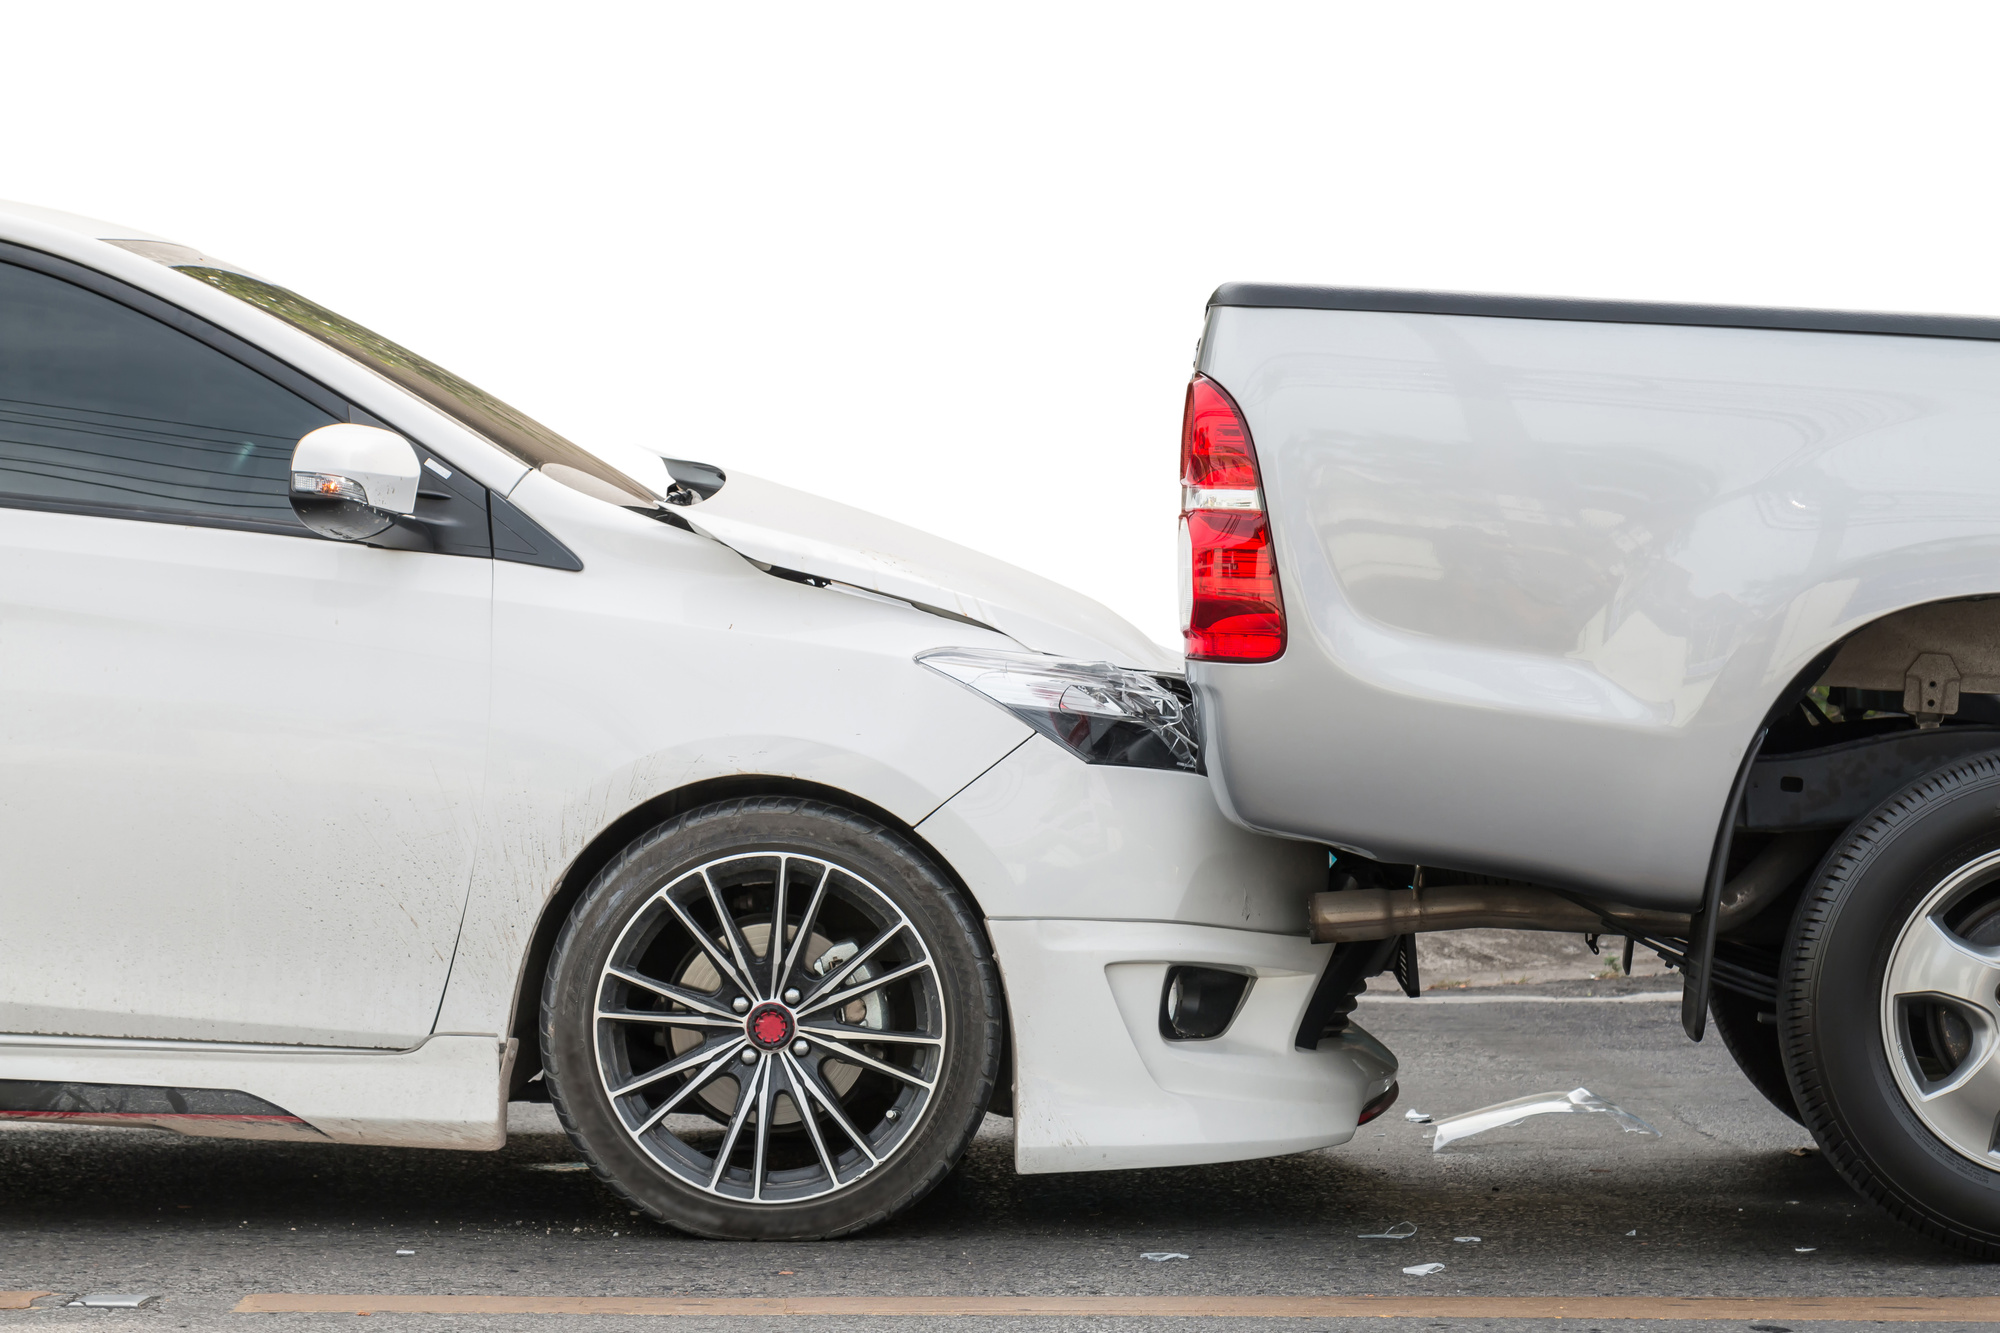 Rear End Collision Between Two Cars